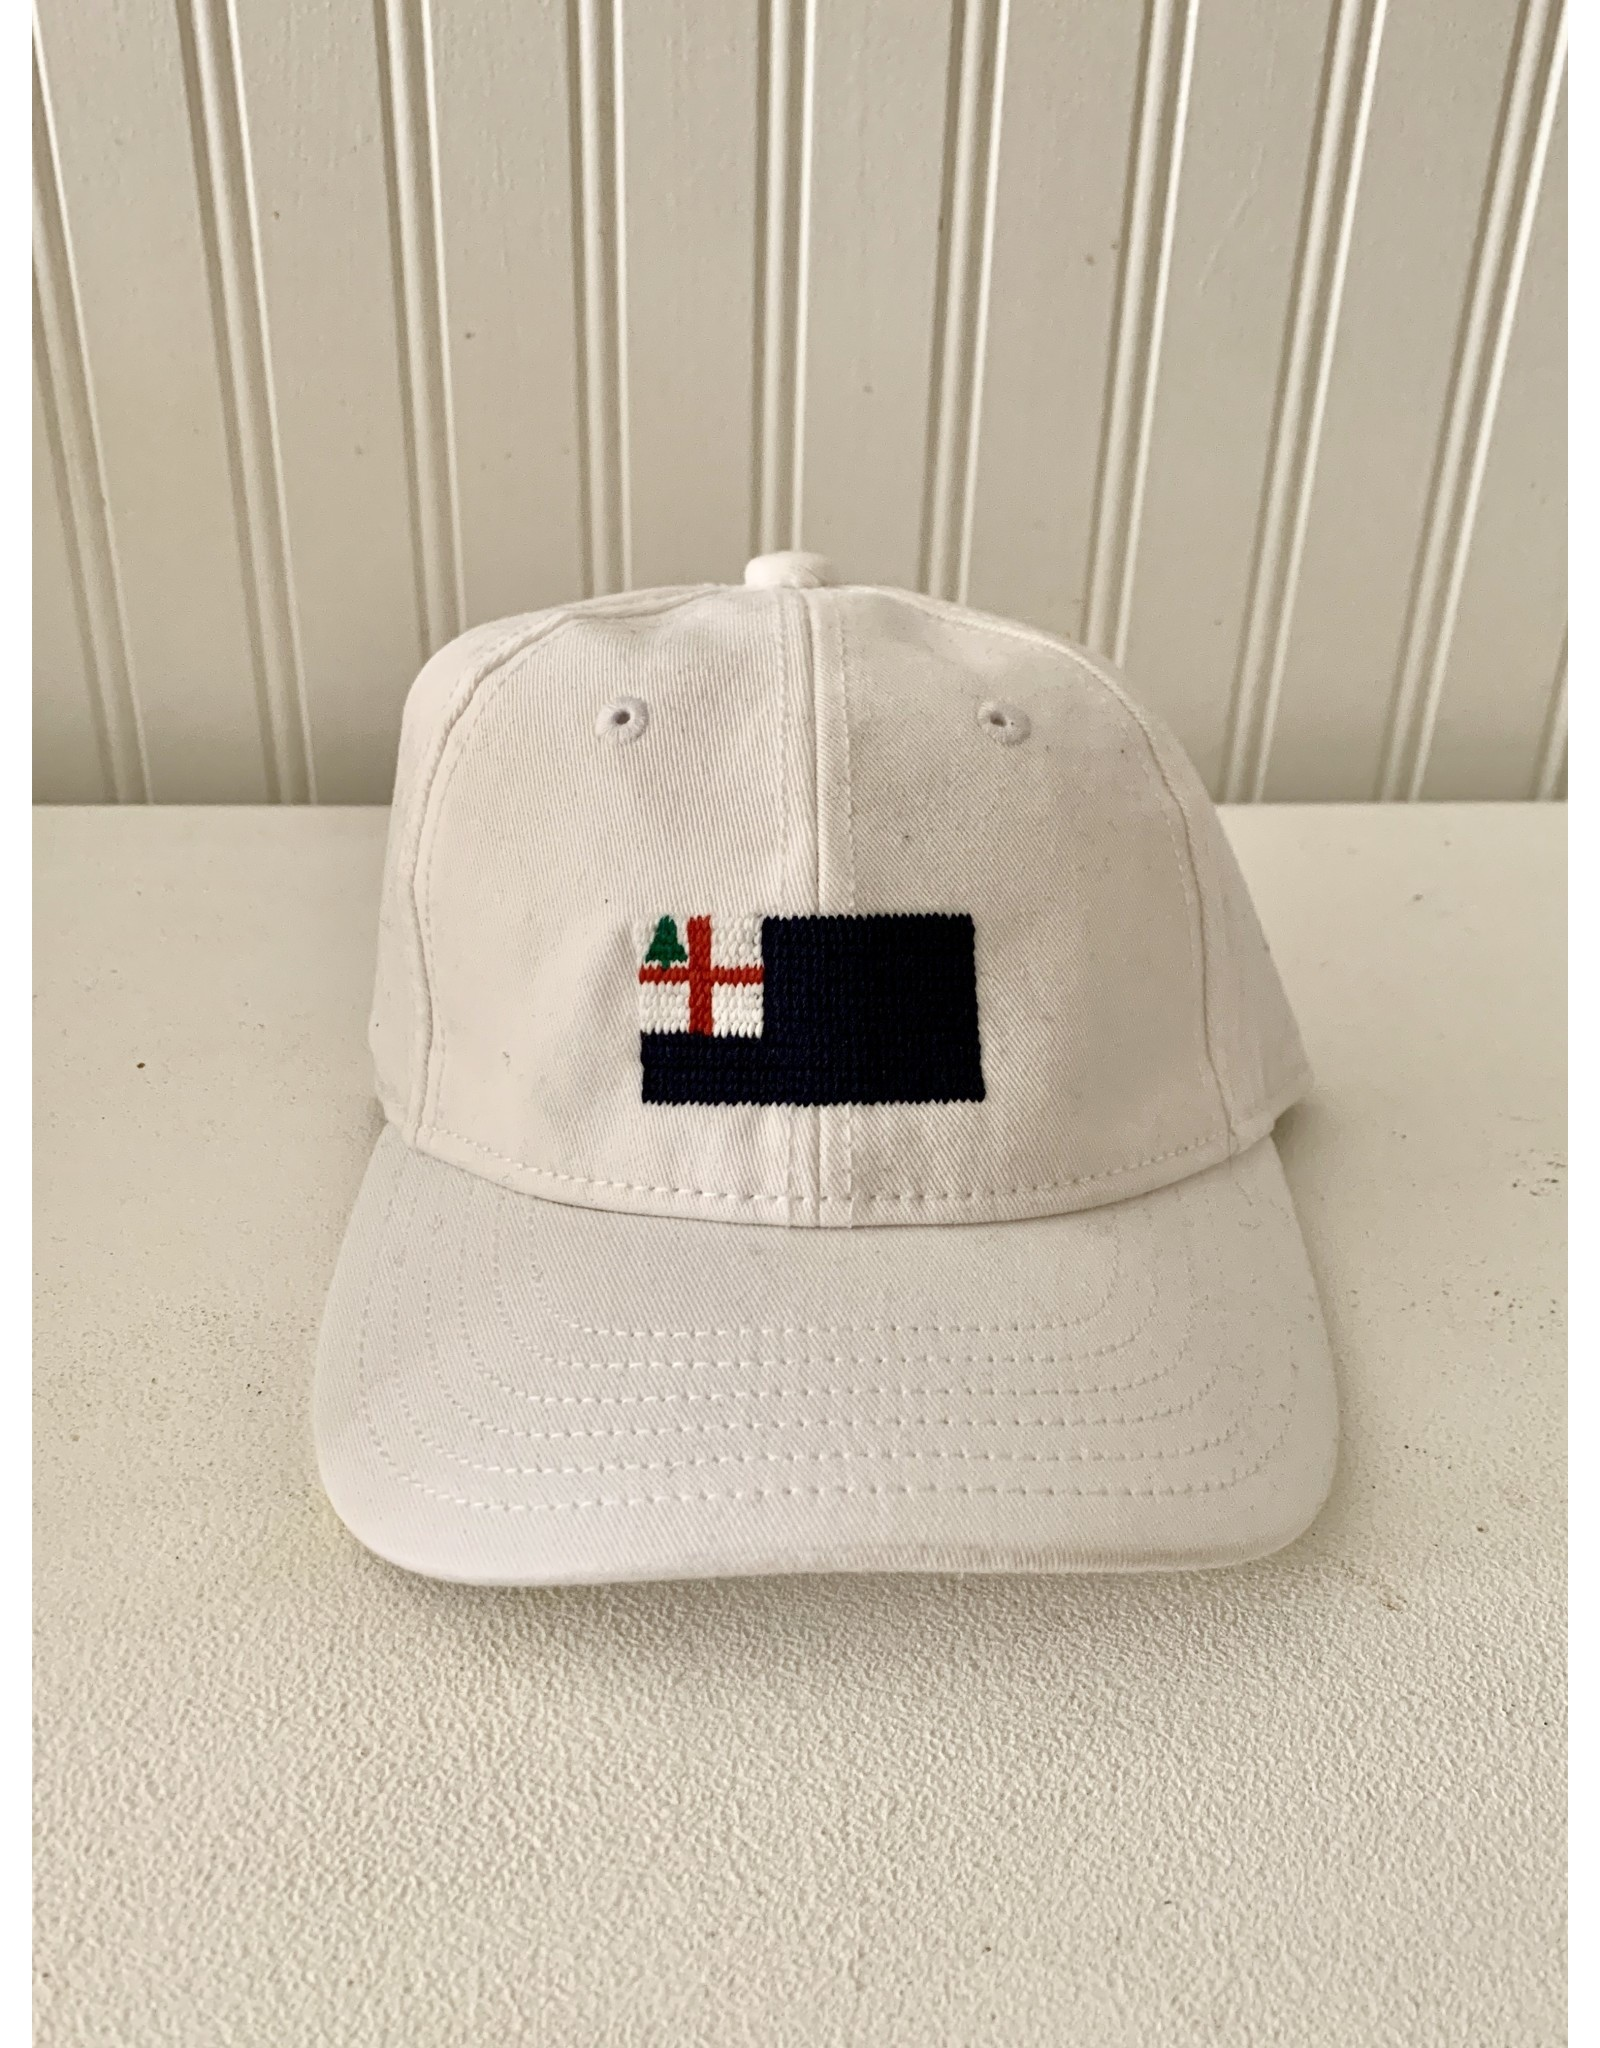 Harding Lane Bunker Hill Flag Hat - Kid